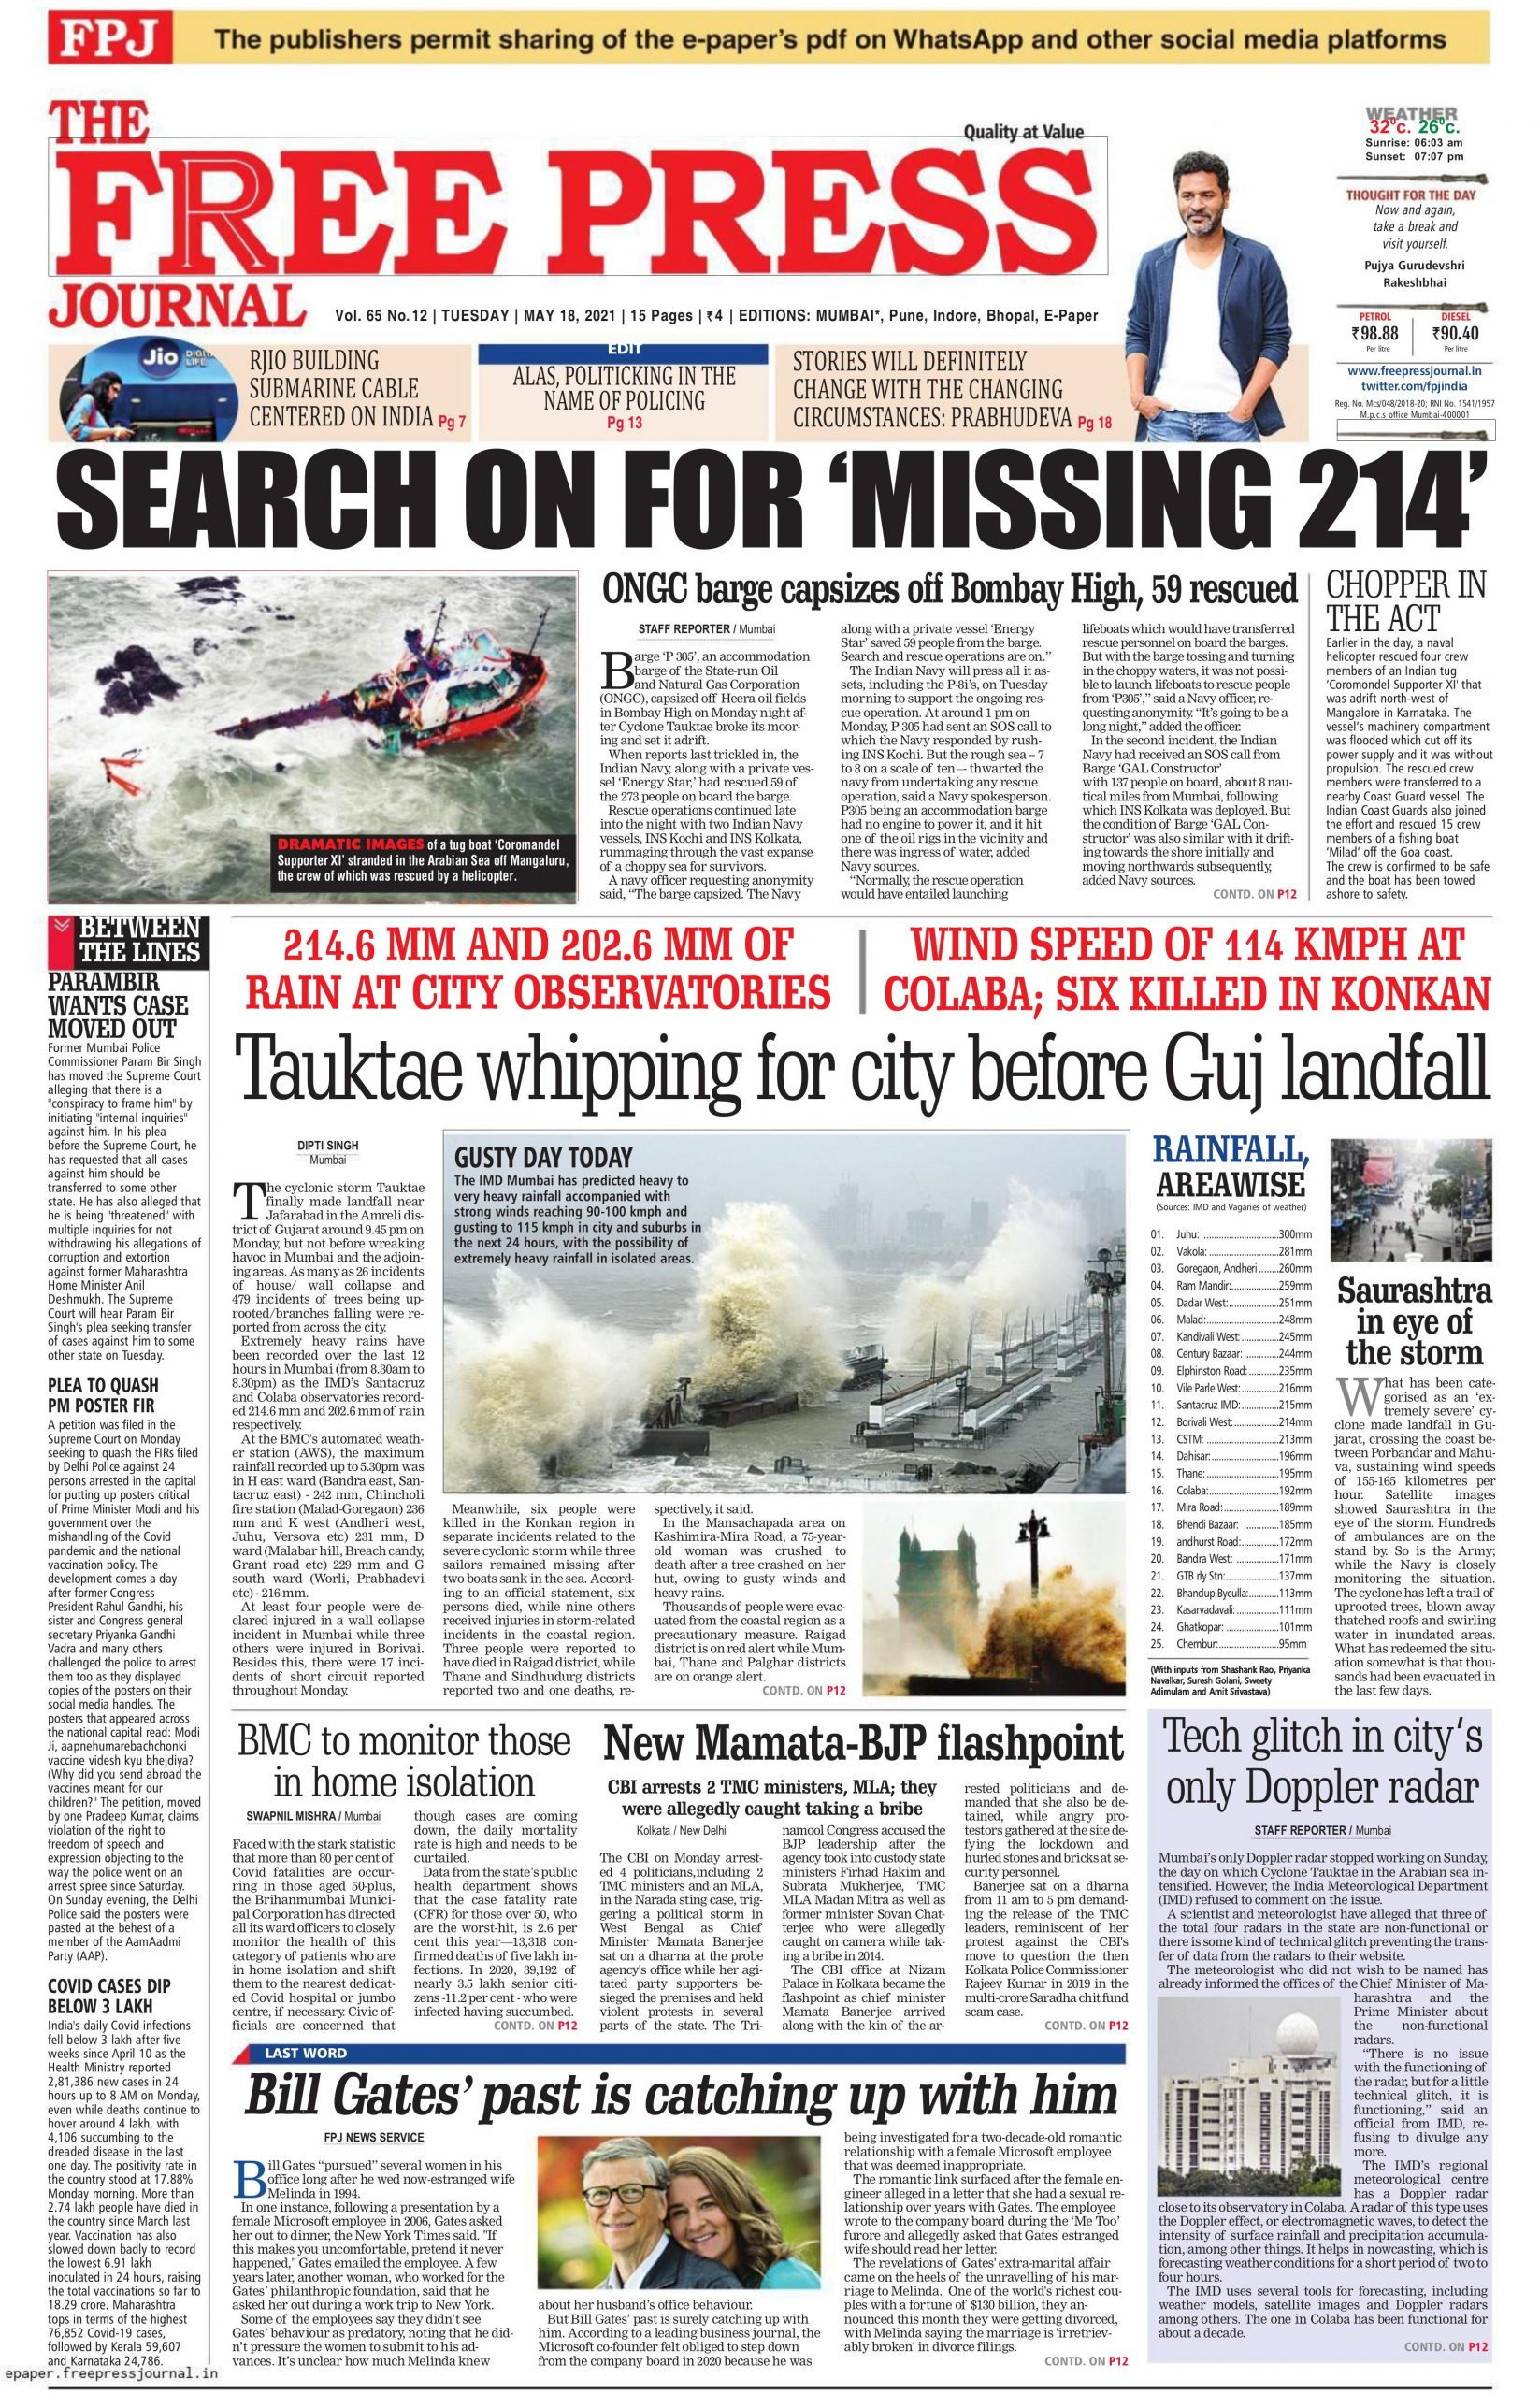 The Free Press Journal 18th May 2021